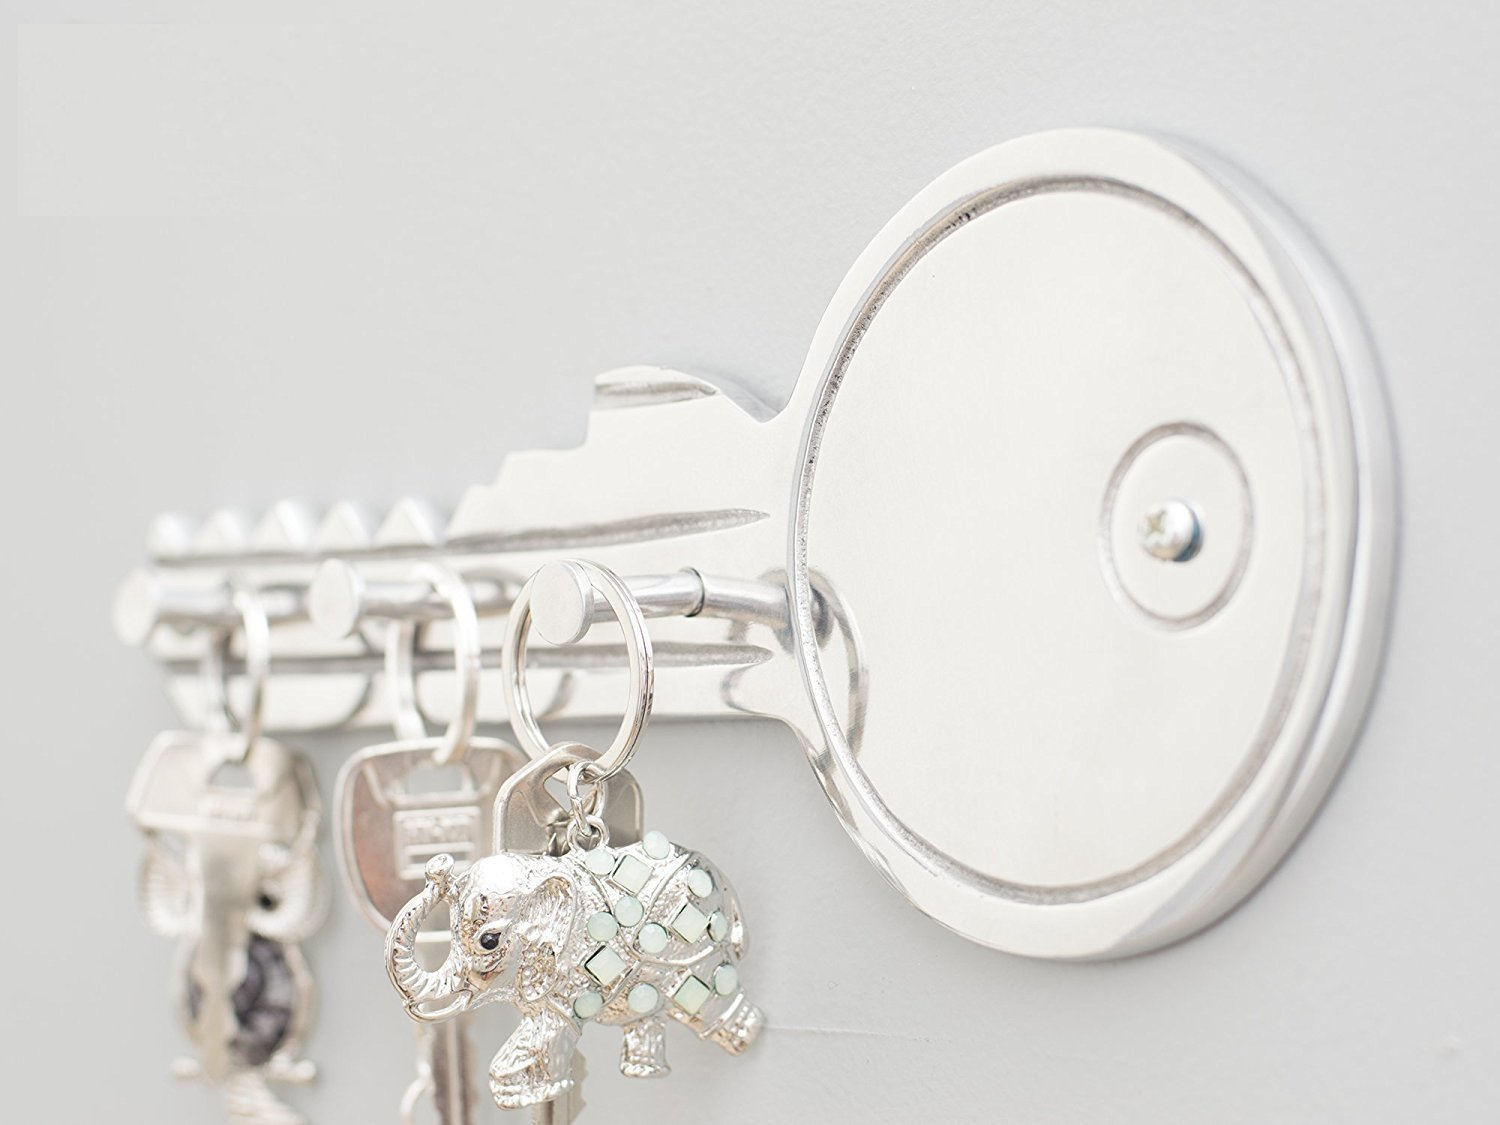 Get Quotations Decorative Key Shaped Wall Holder By Comfify Hand Cast Aluminum Metal Hooks